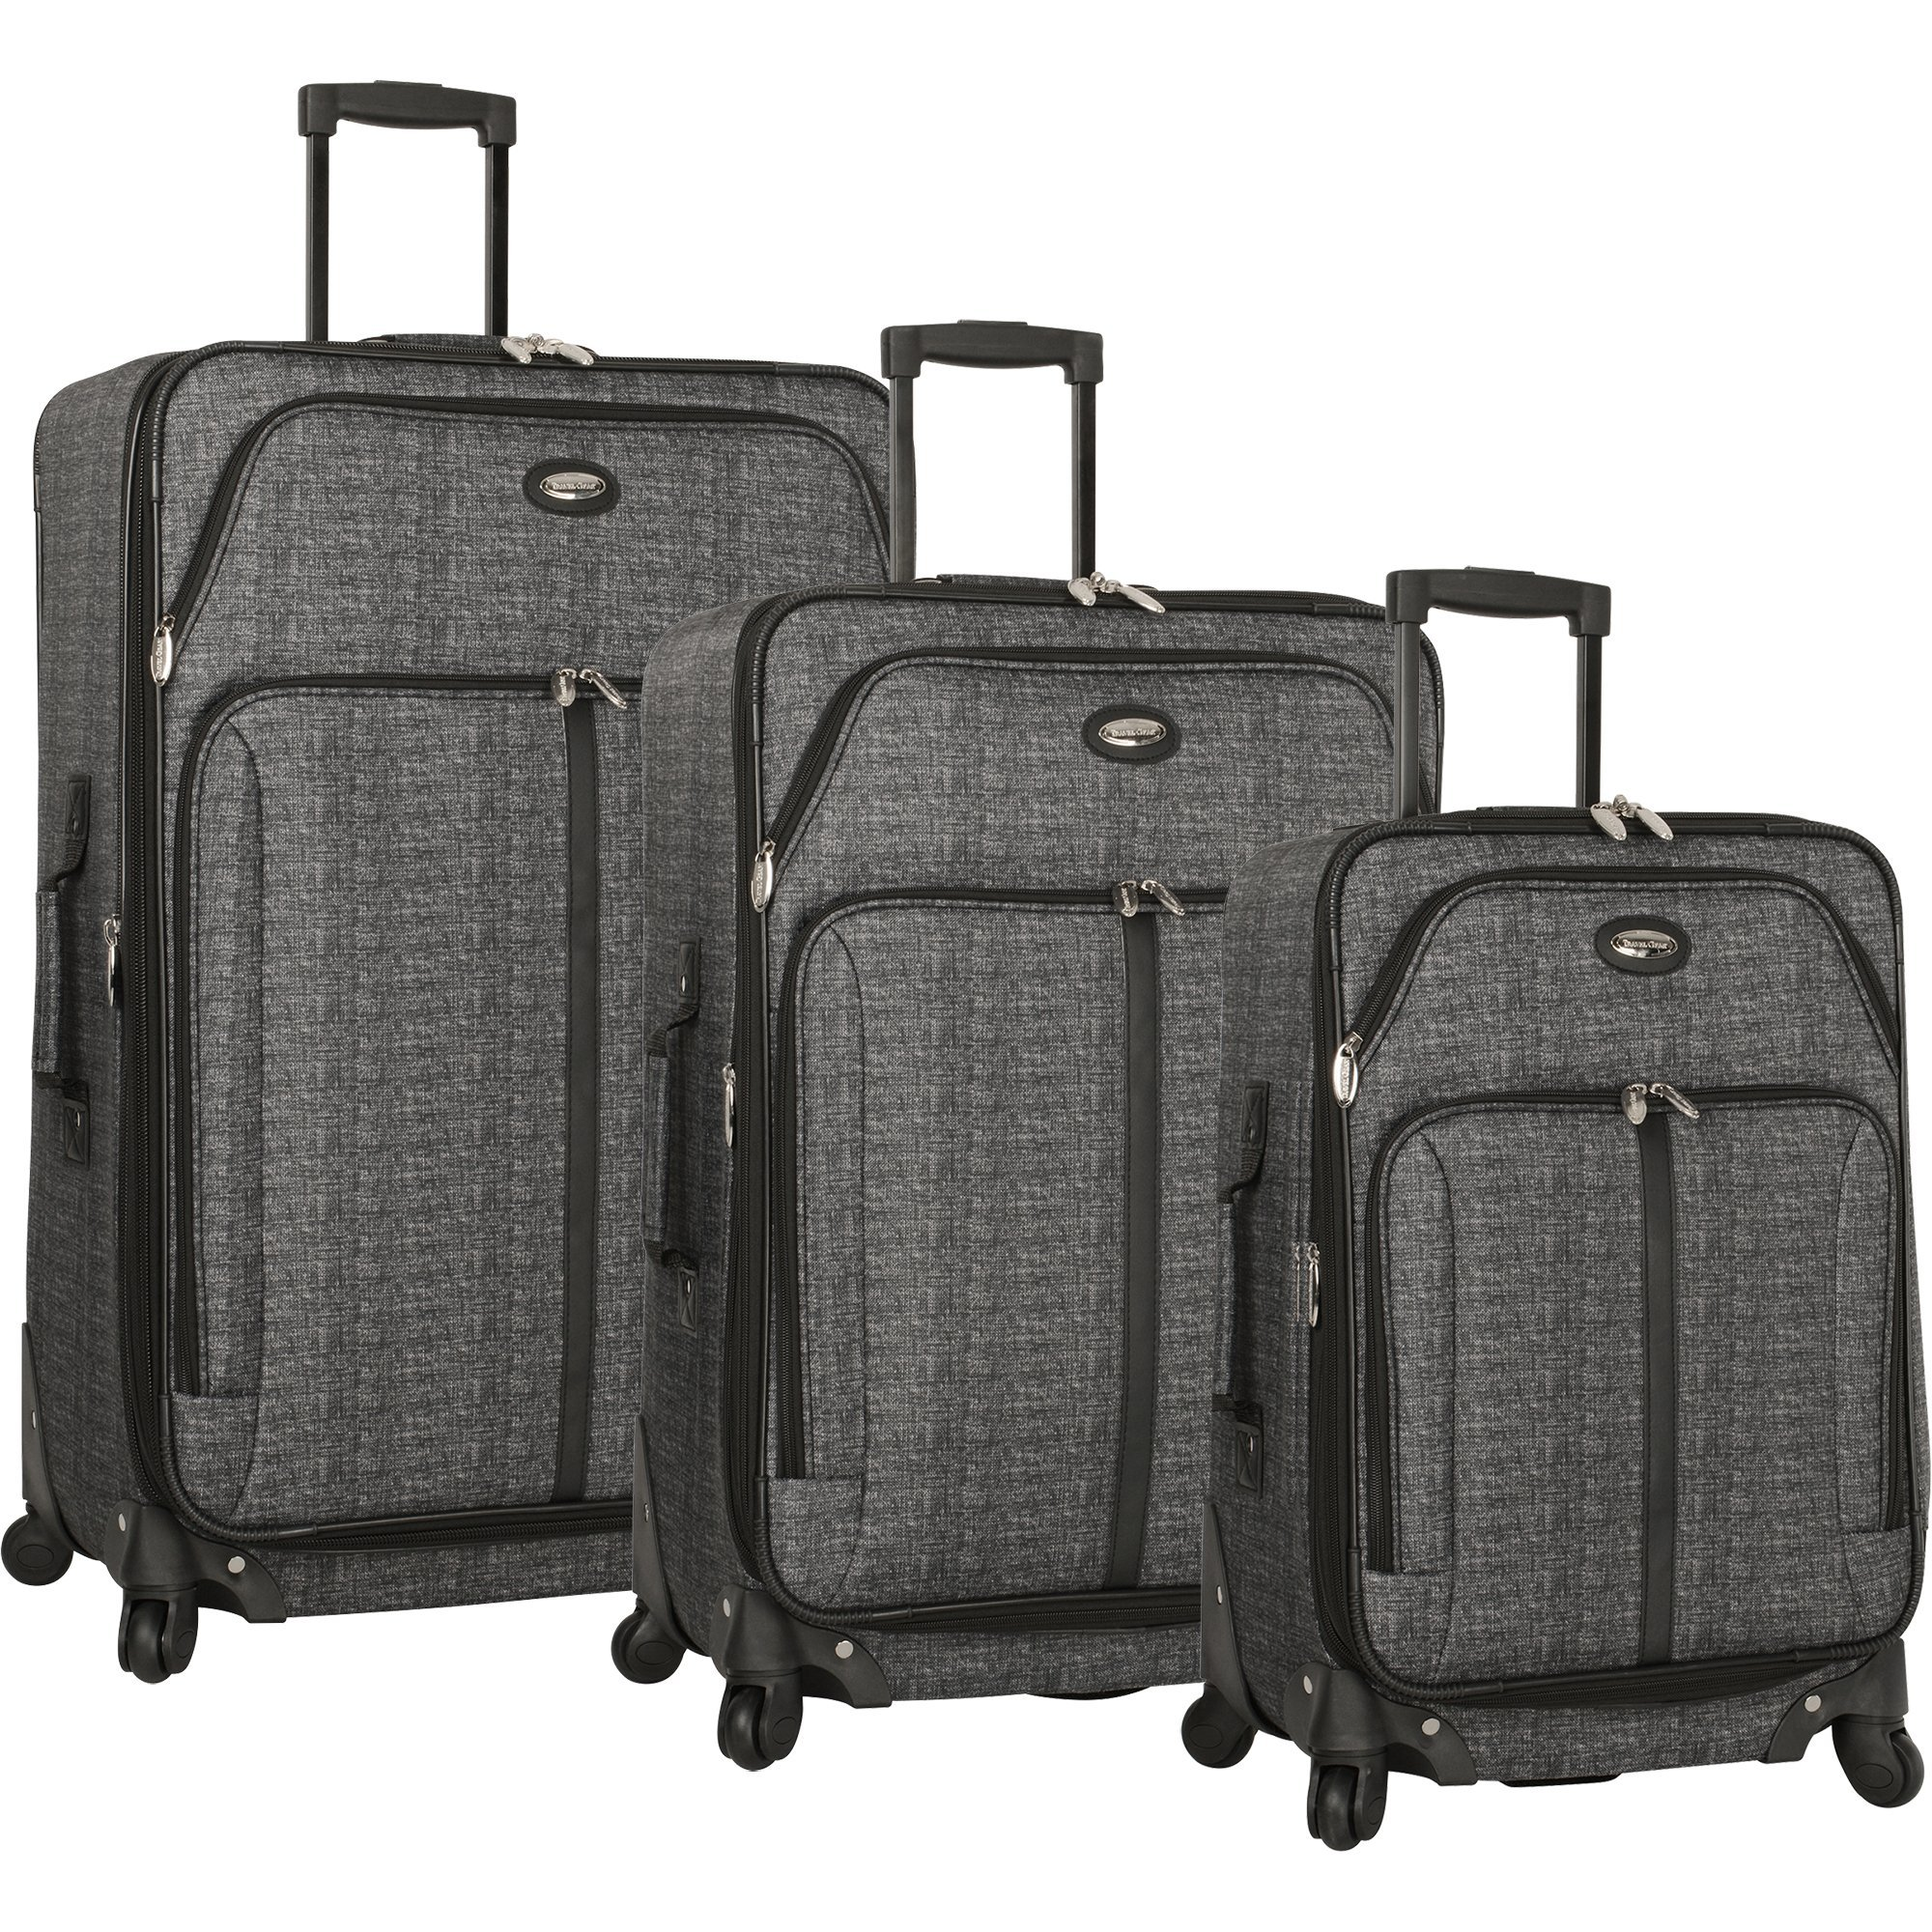 Travel Gear Triton 3 Piece Expandable Spinner Luggage Set